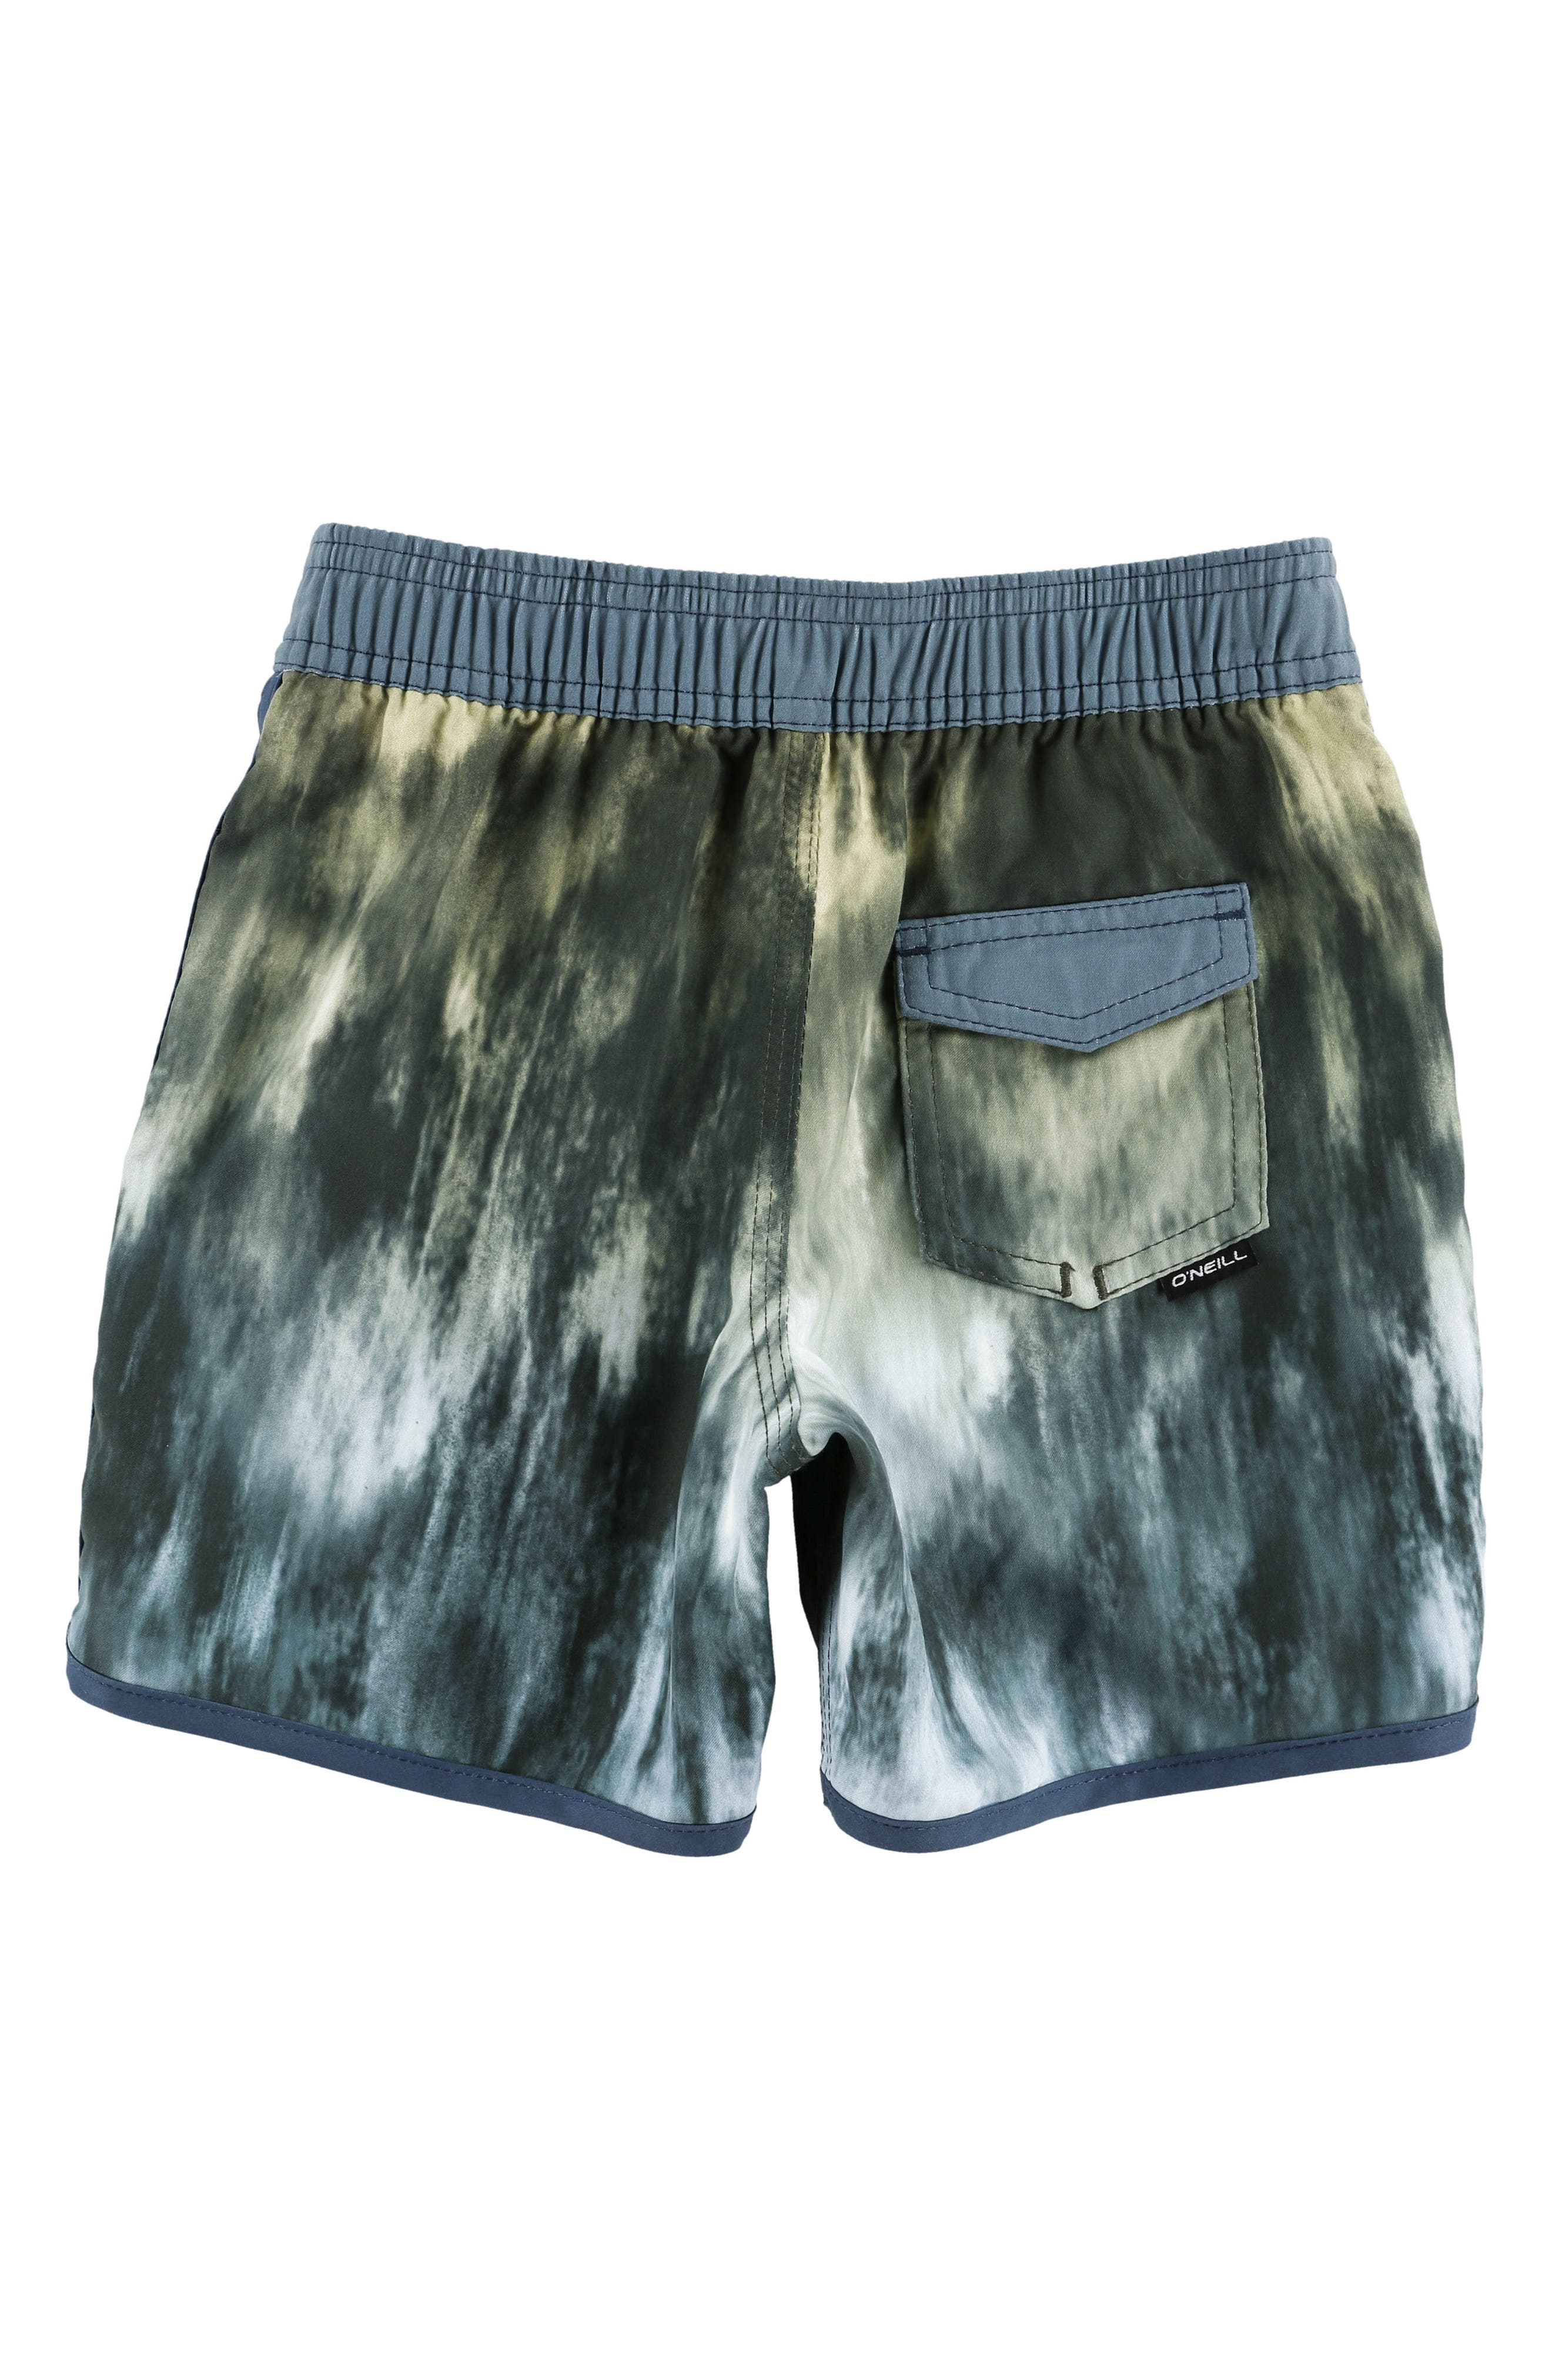 Mystical Board Shorts,                             Alternate thumbnail 2, color,                             441